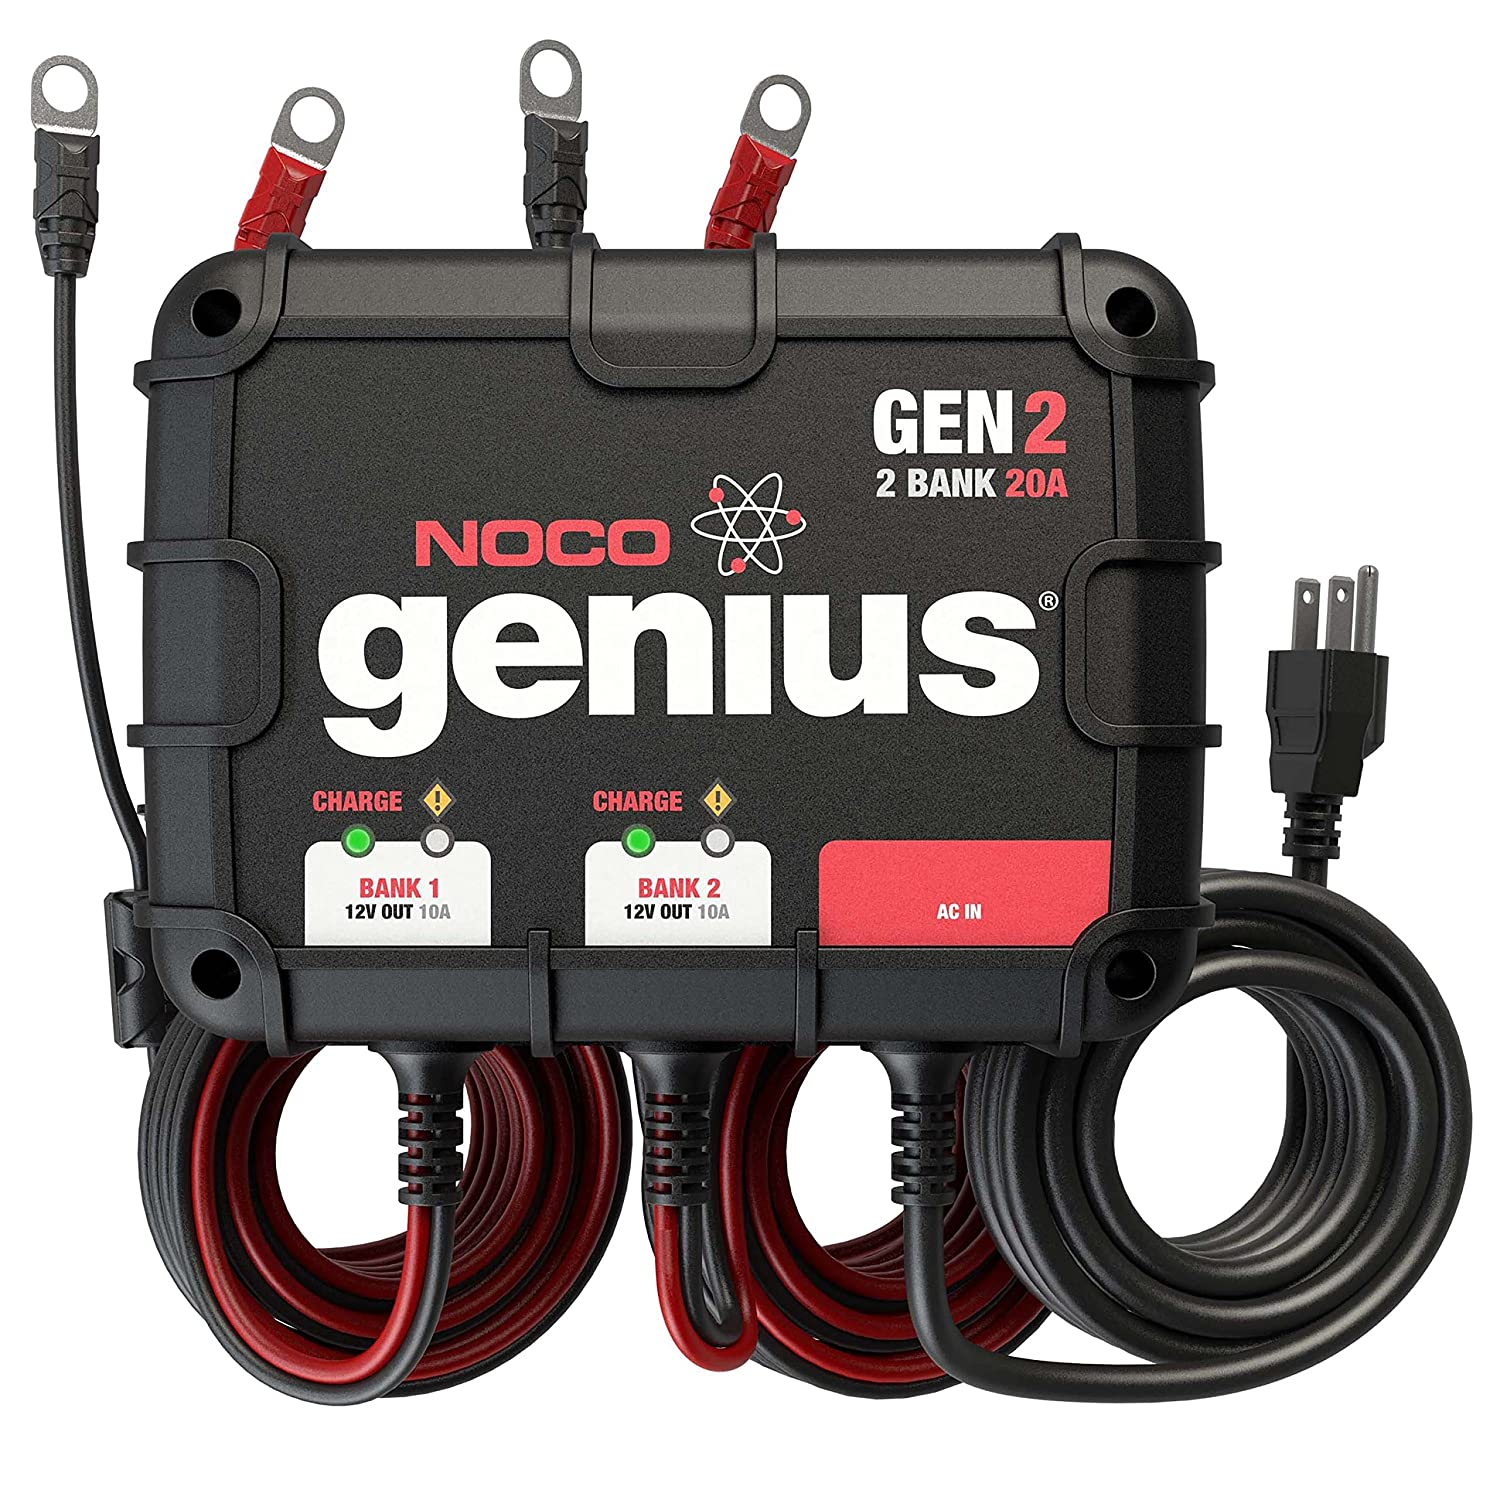 f9873e1849bb Amazon.com: NOCO Genius GEN2 20 Amp 2-Bank On-Board Battery Charger:  Automotive